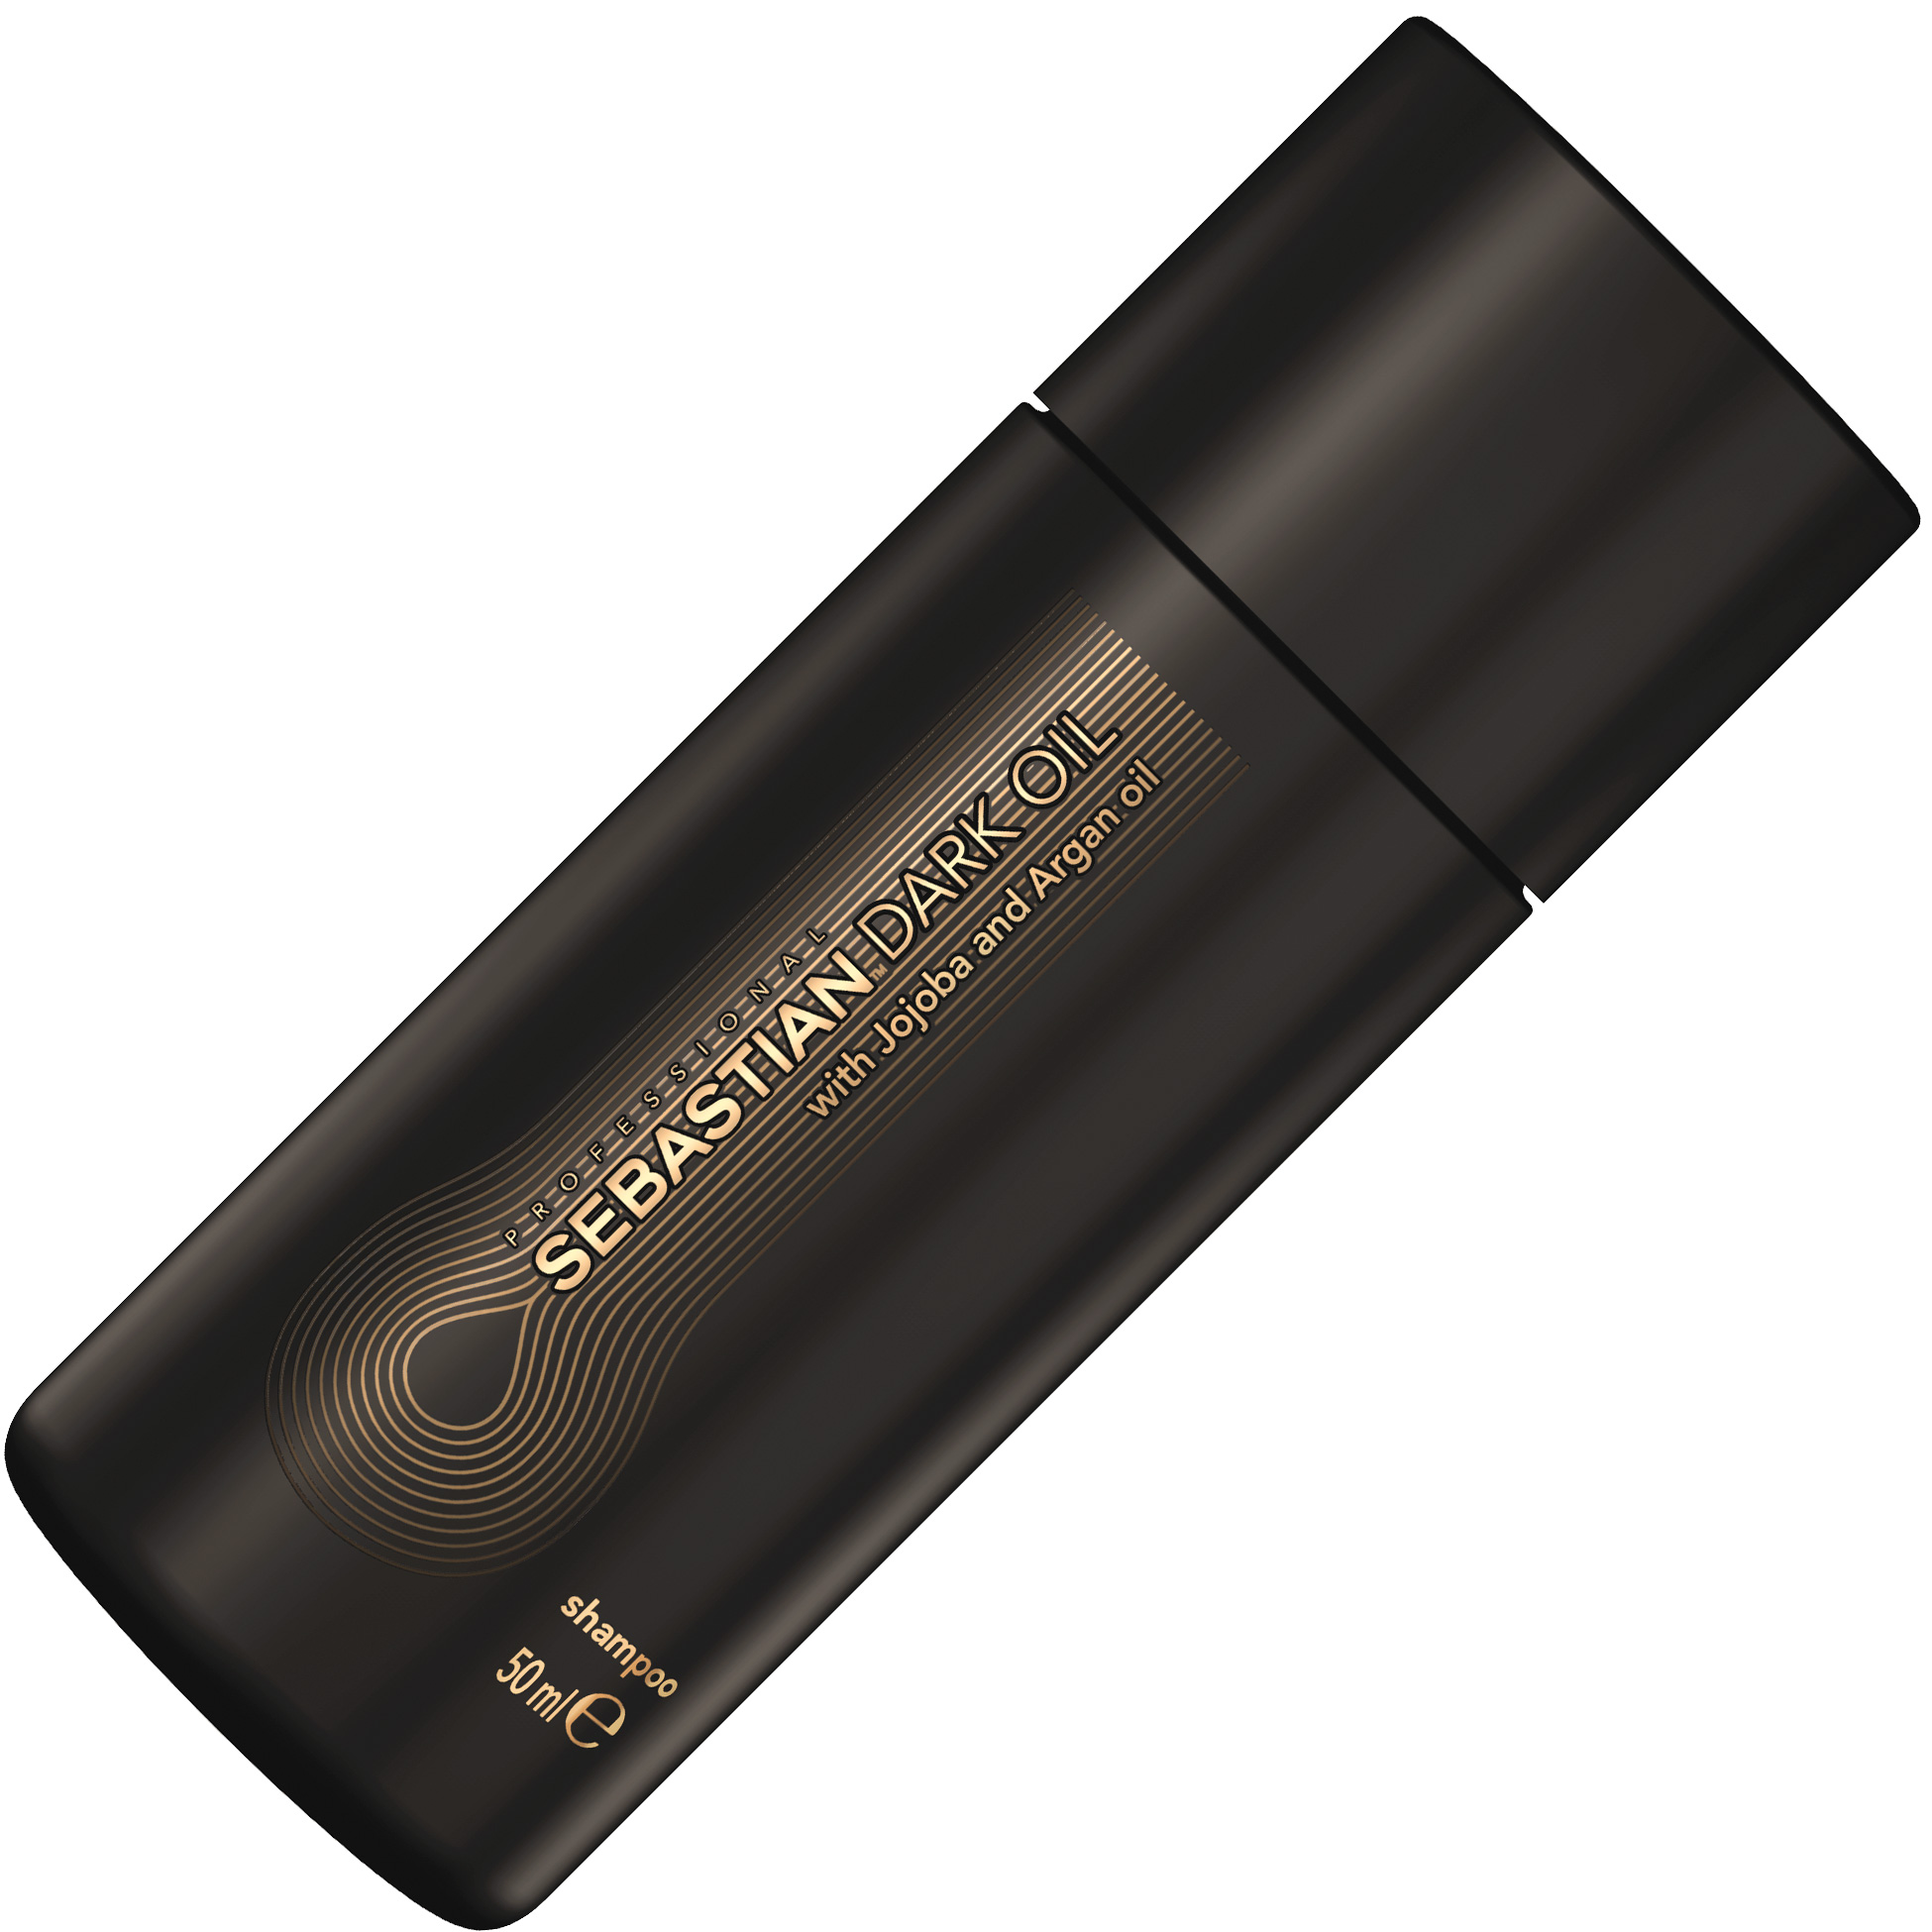 Sebastian Dark Oil Shampoo (50ml)